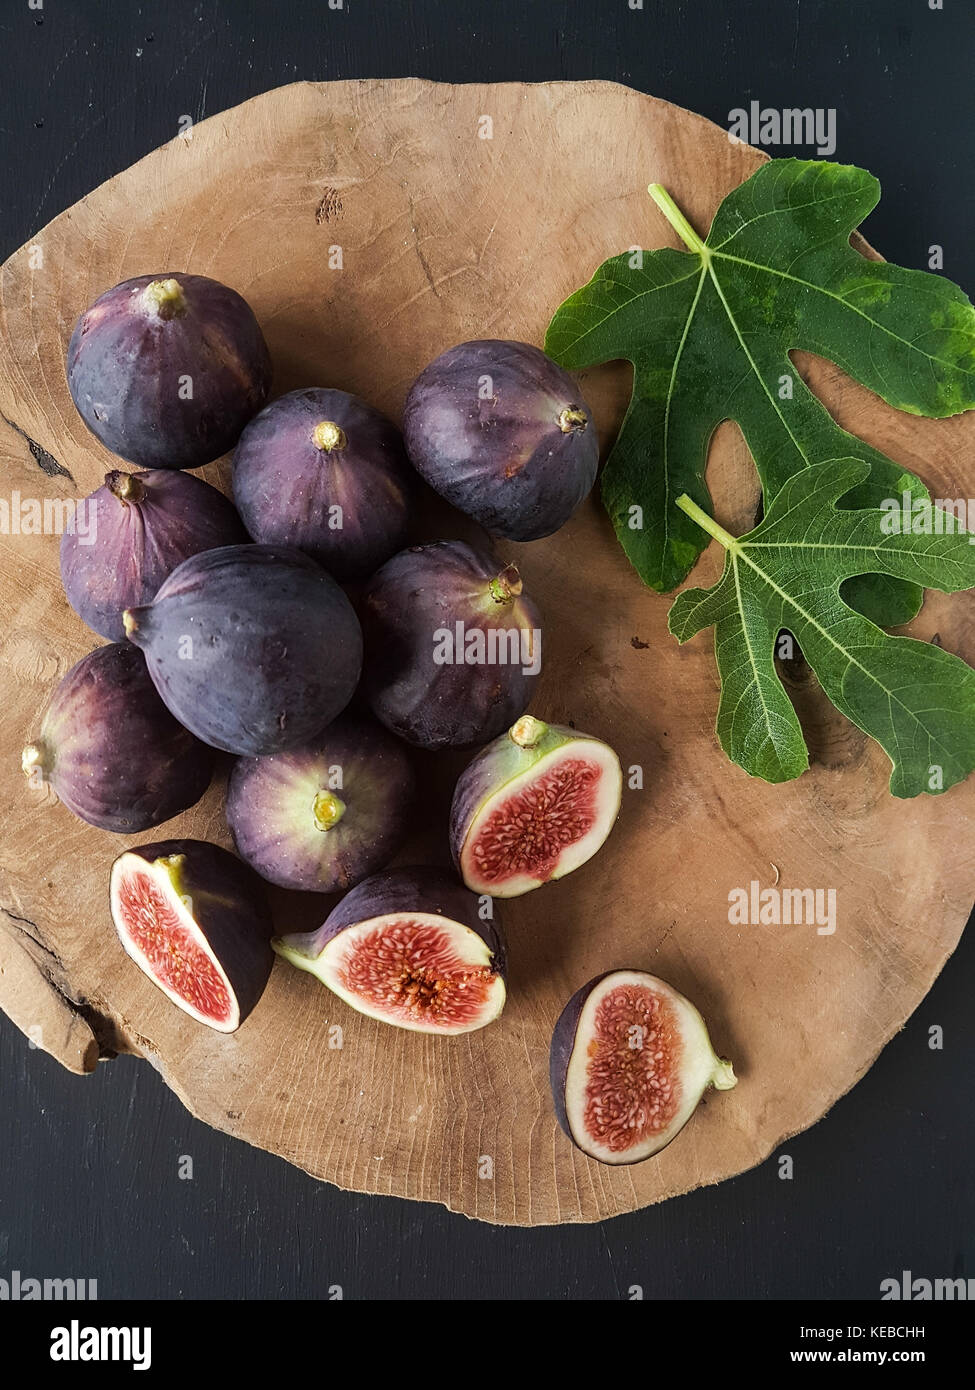 Figs on a black background - Stock Image